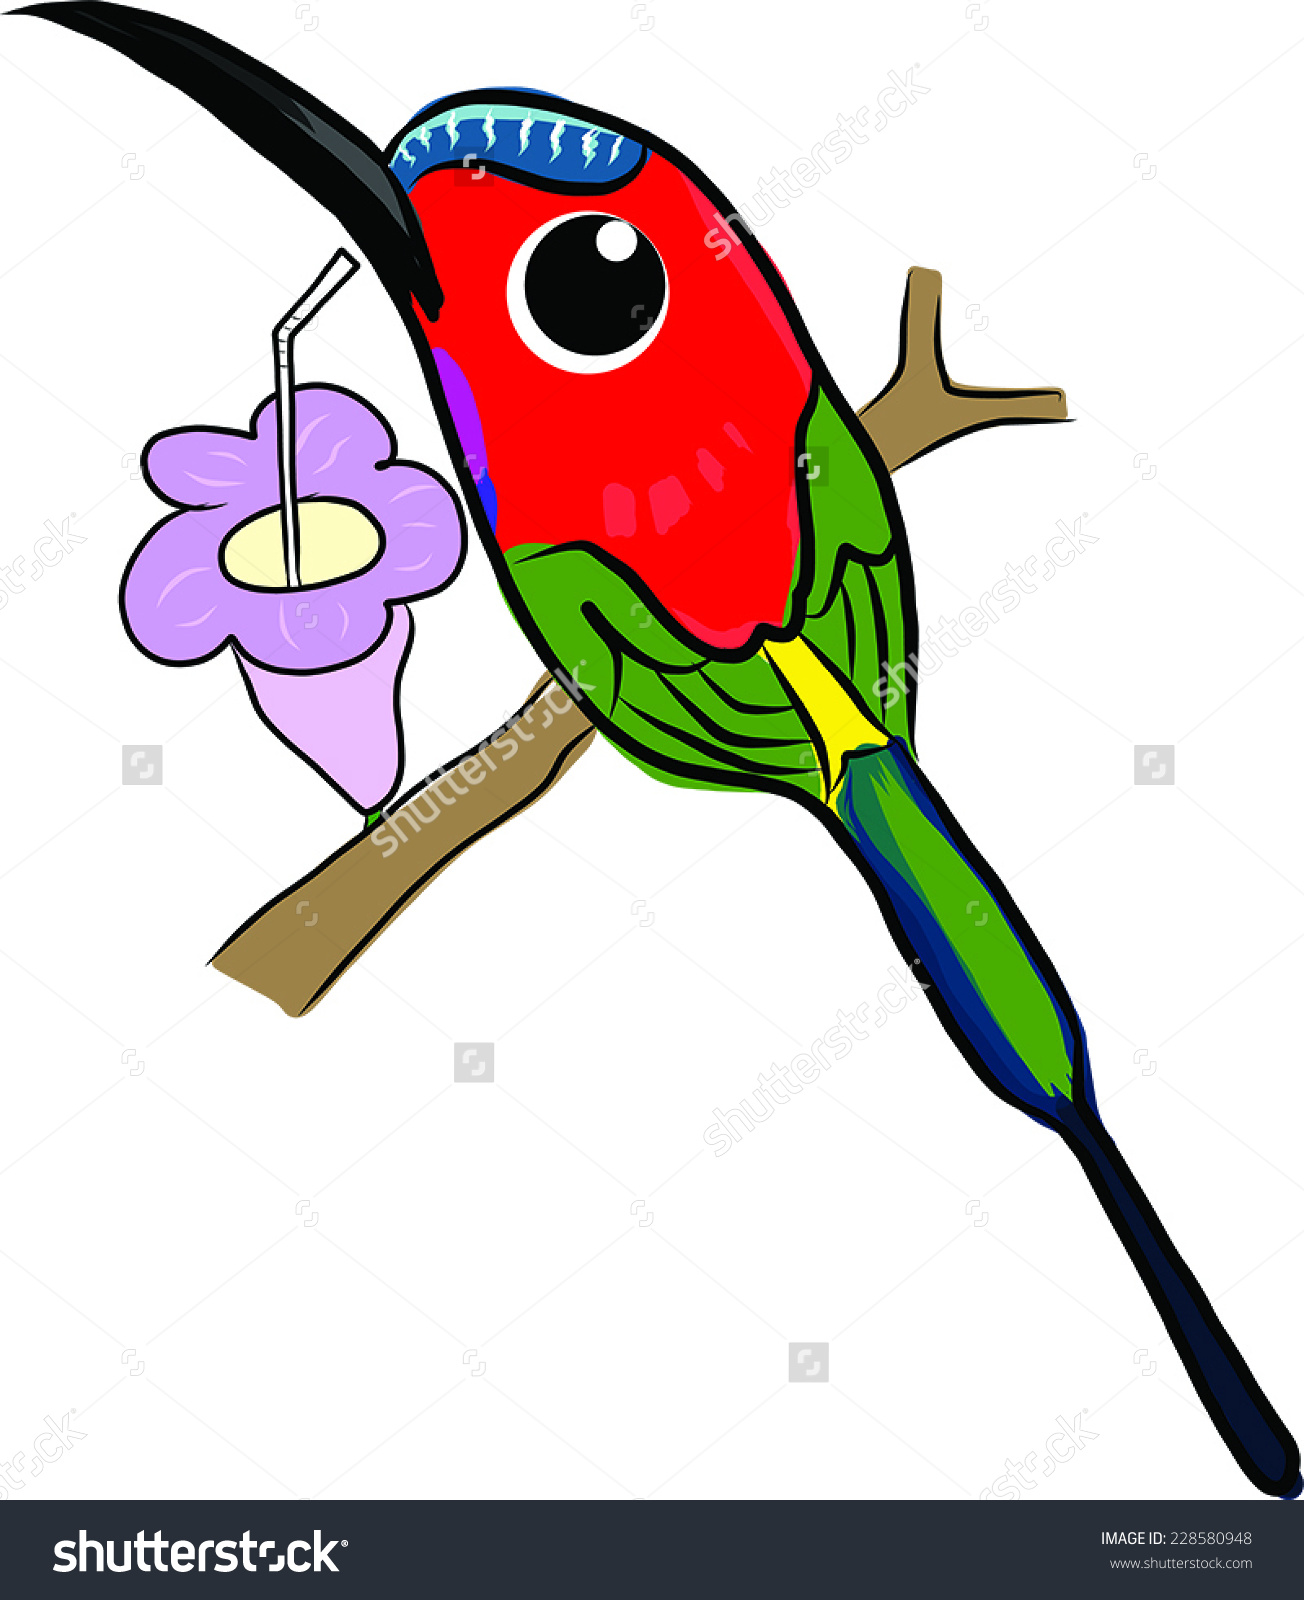 Sunbird clipart #4, Download drawings